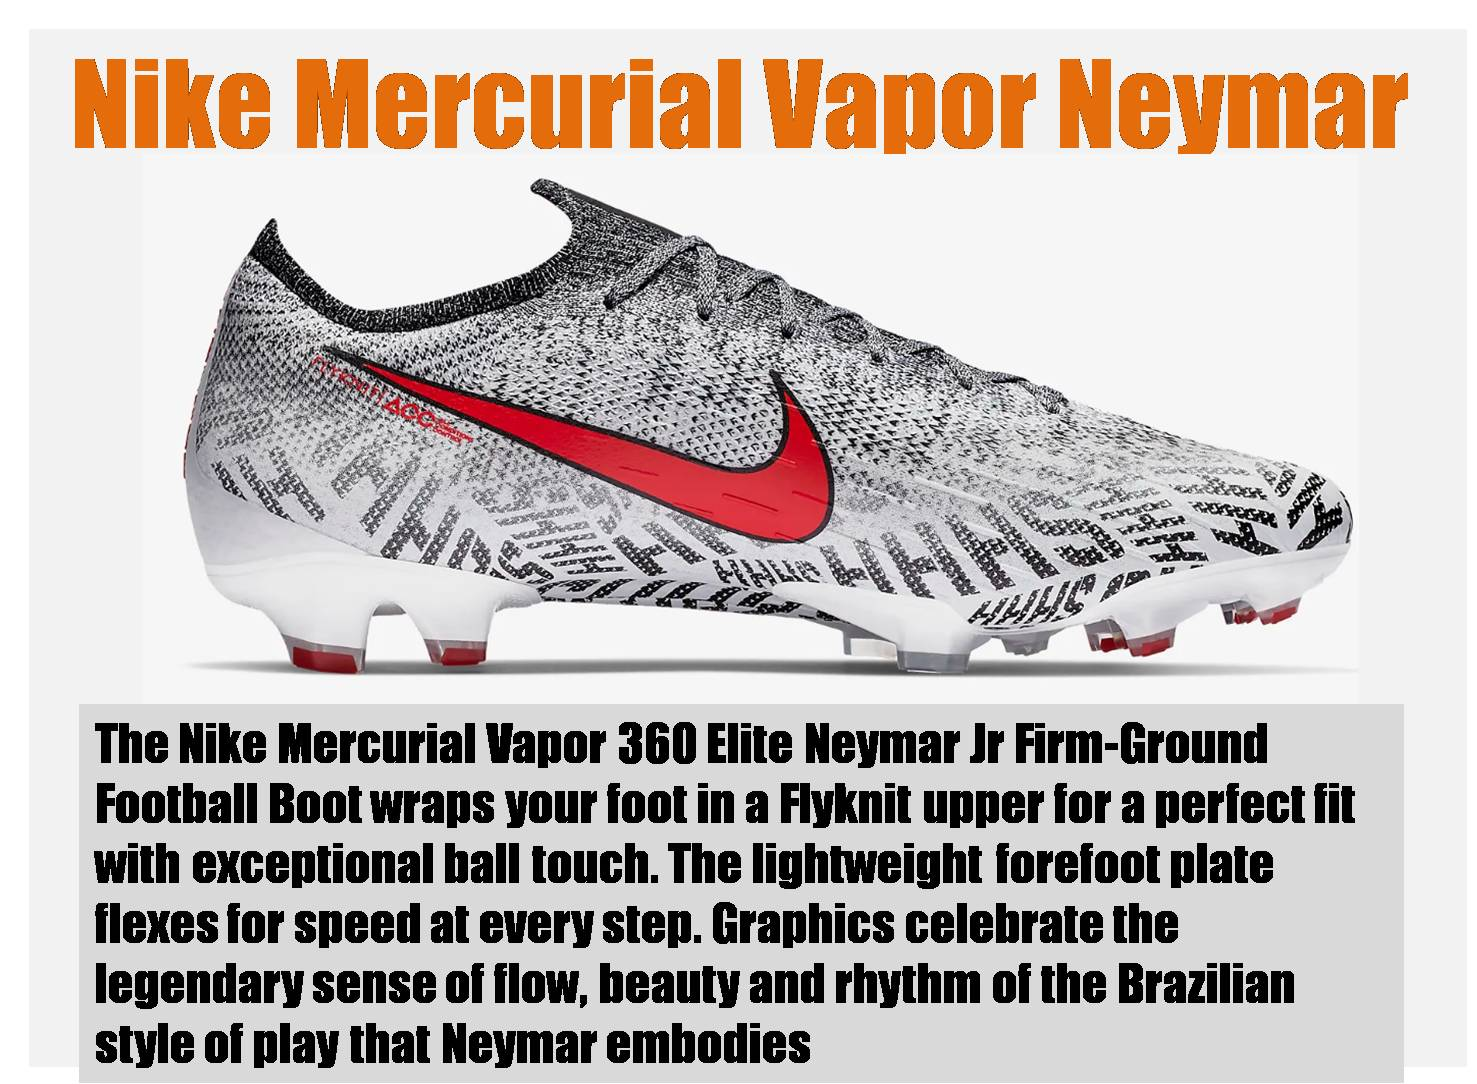 Nike_Mercurial_Vapor_Neymar_football_Shoes_Review_01